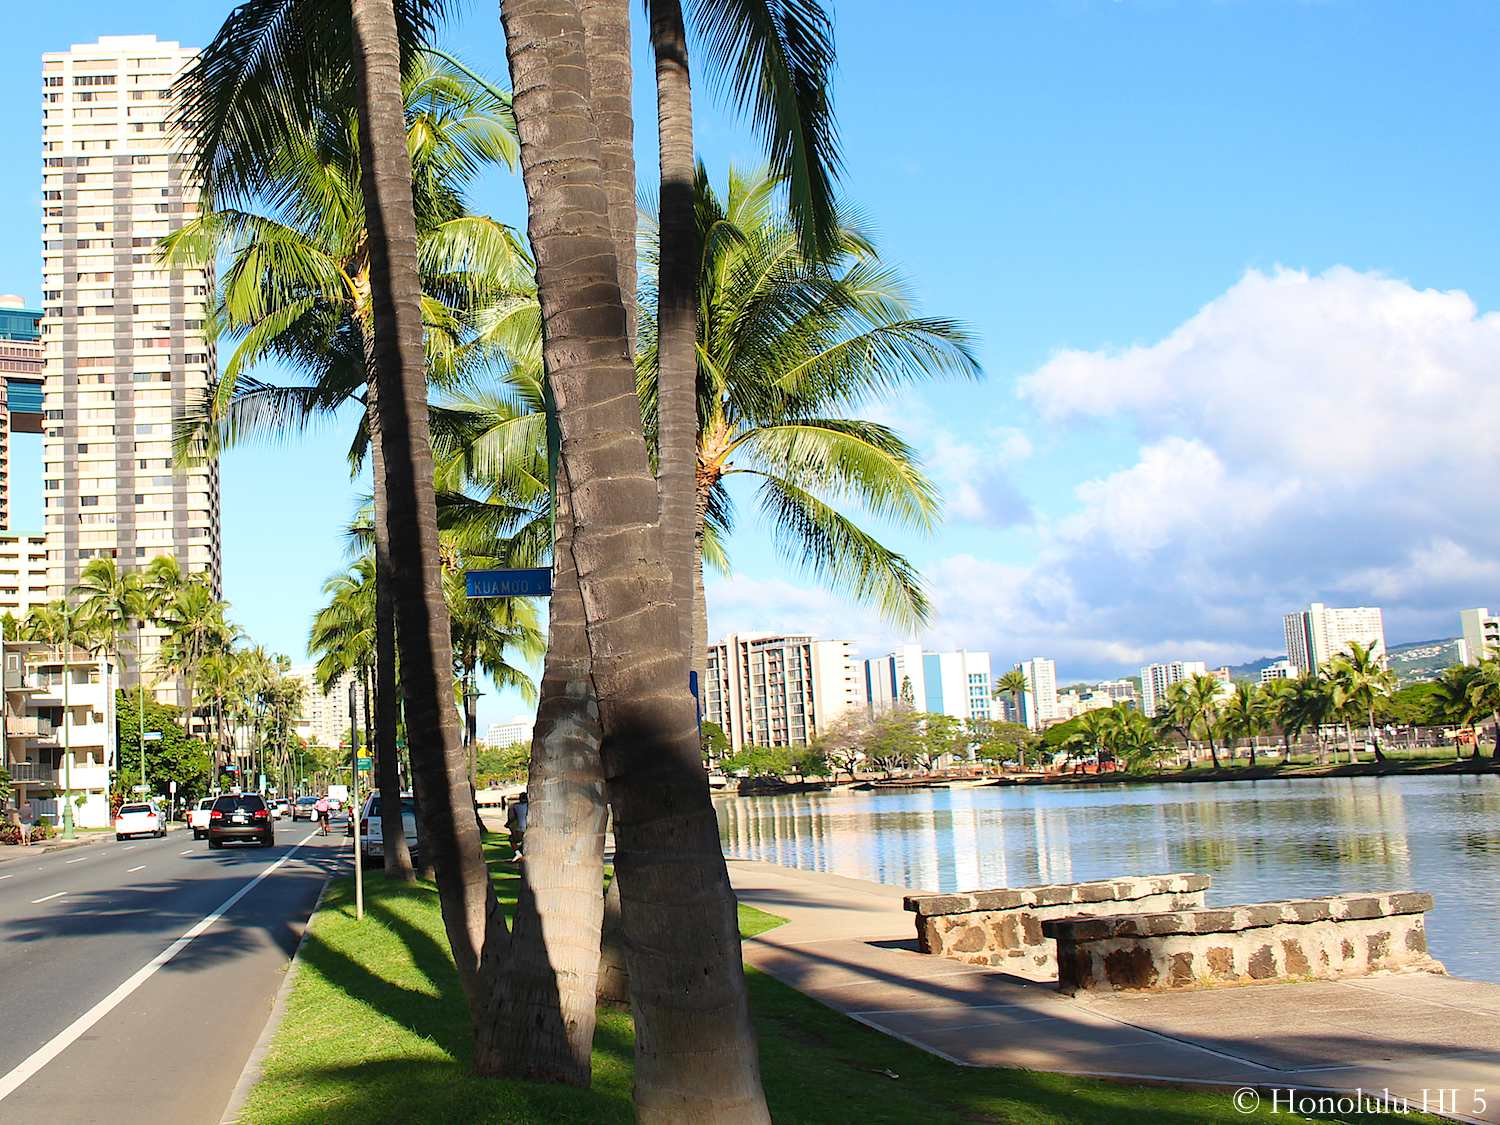 Hawaiian Monarch Condo Seen From Ala Wai Boulevard with the Canal on the Right Side